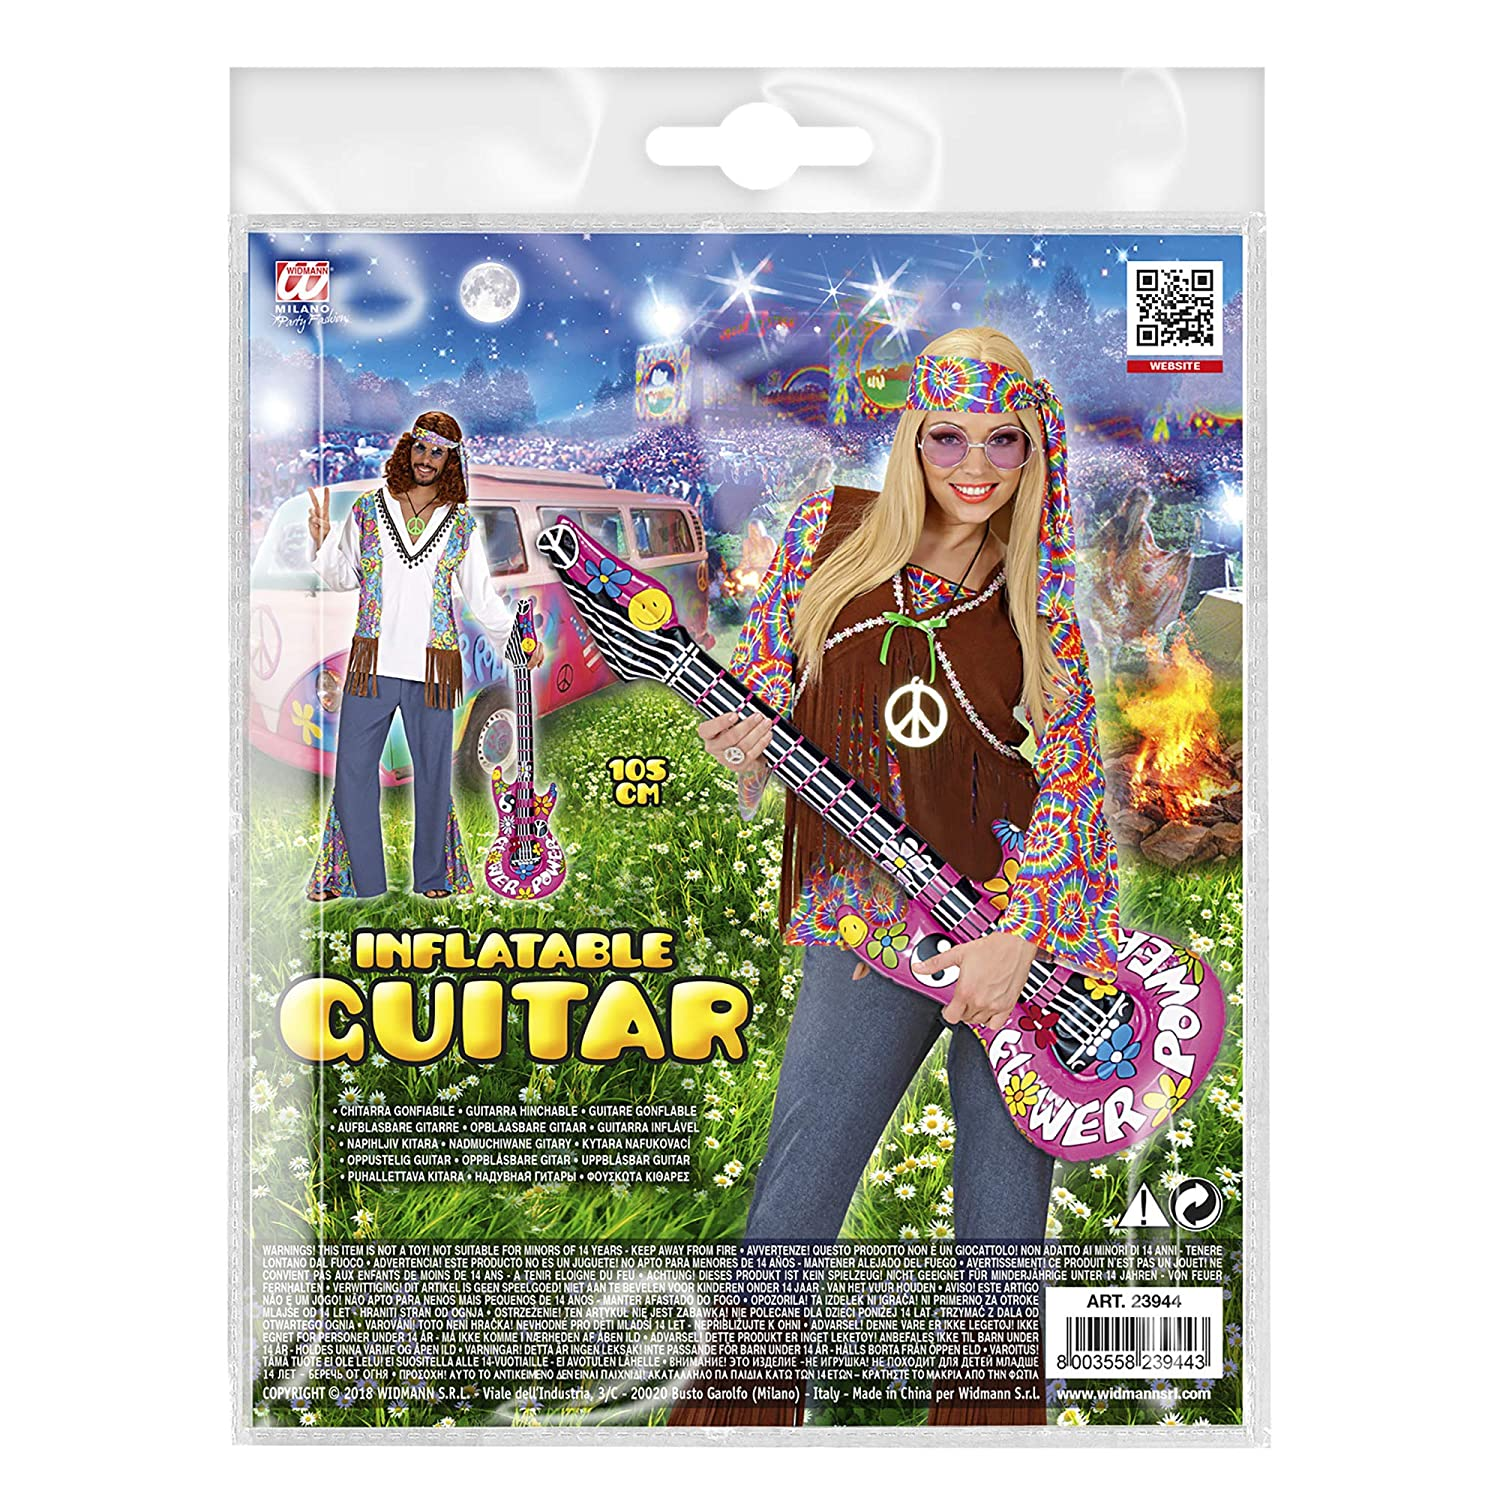 WIDMANN 23944 Hinchable Guitarra, One Size: Amazon.es: Juguetes y ...